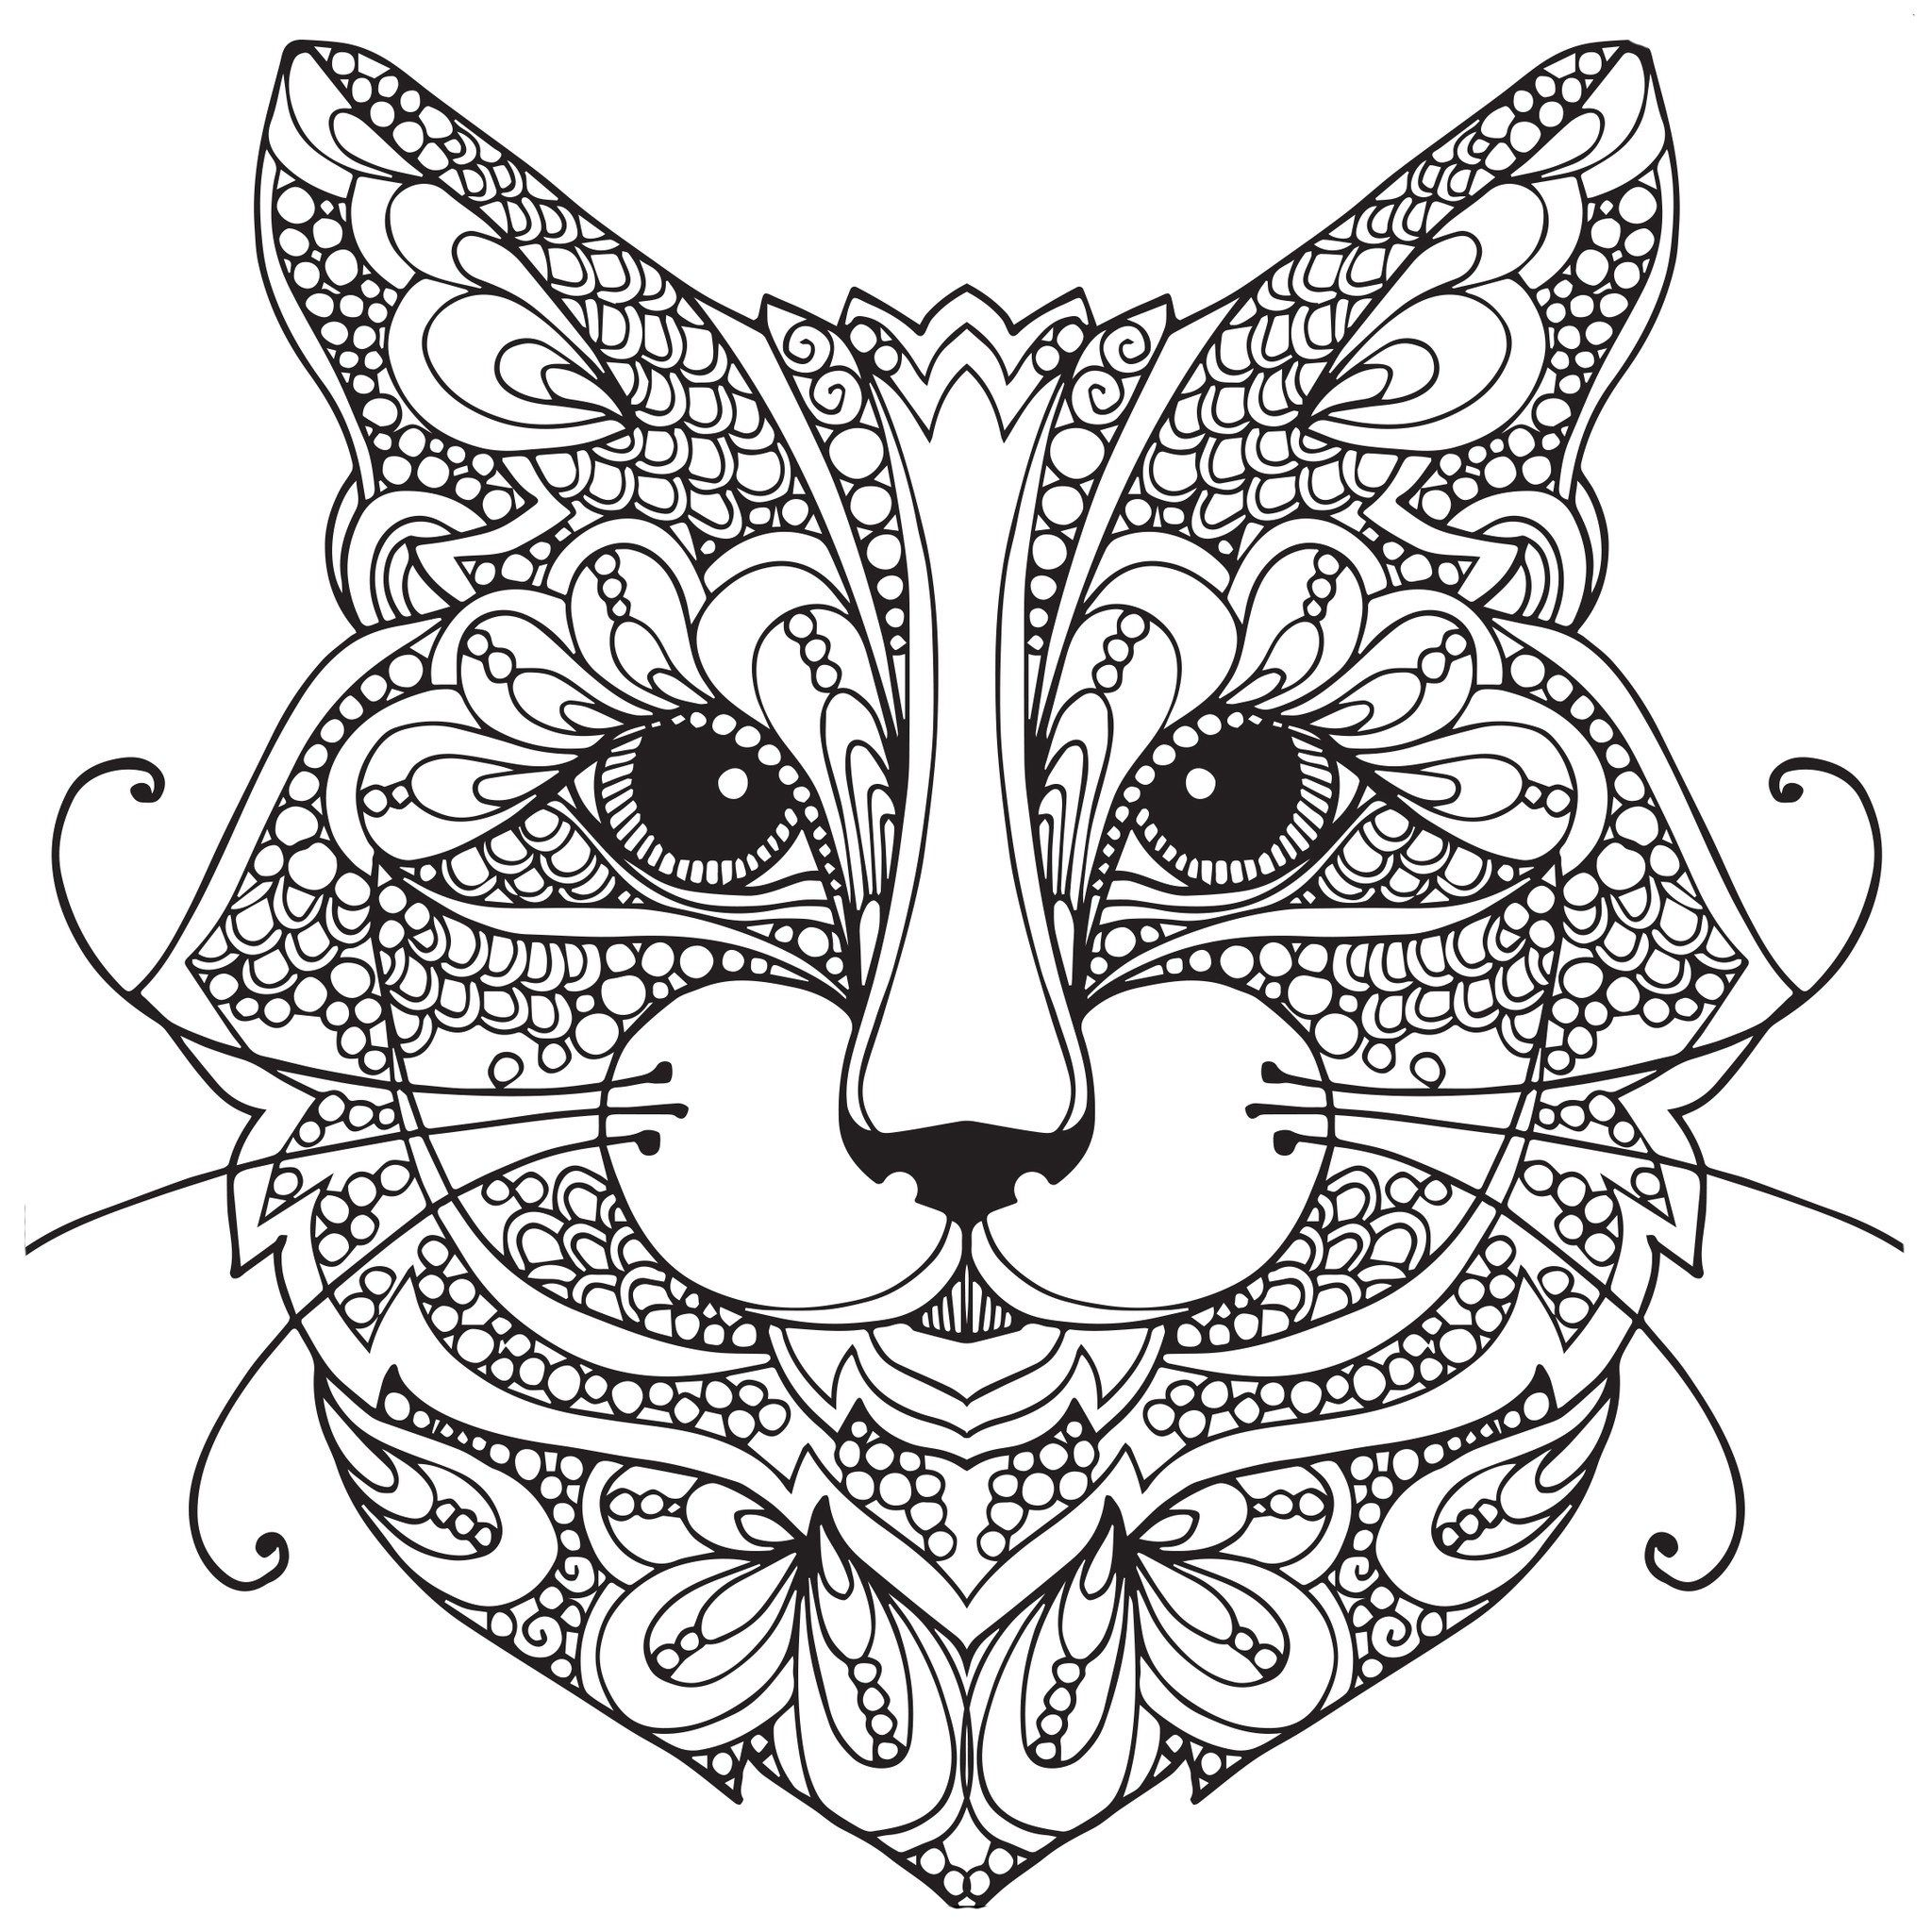 Adult Coloring Pages Cat1 coloring